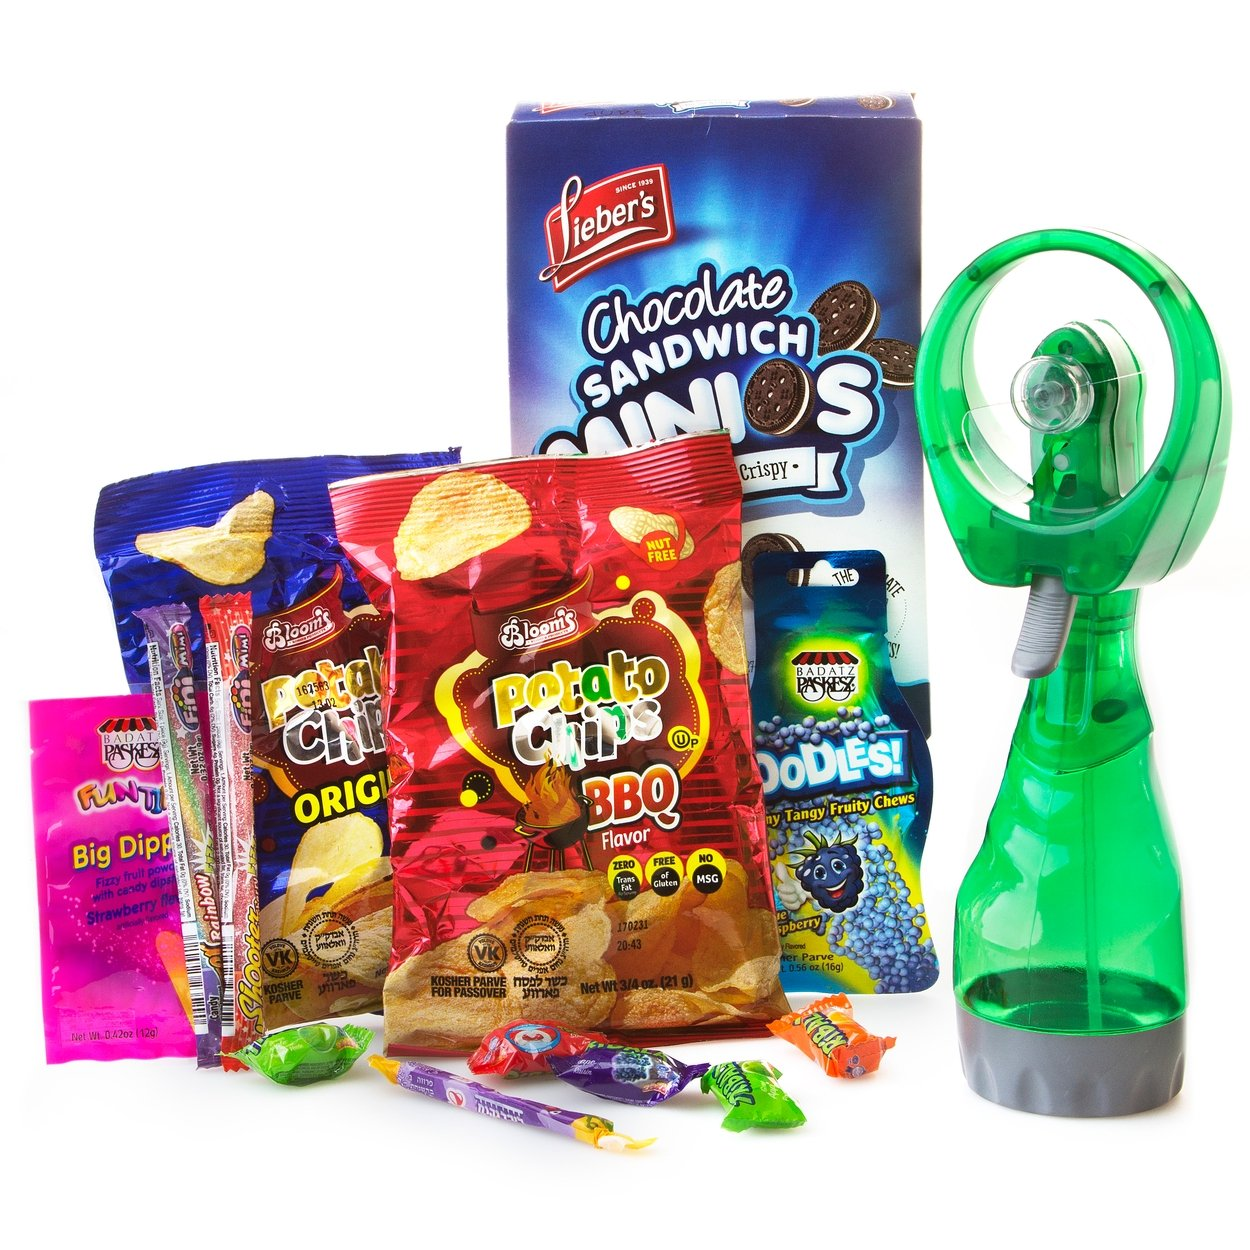 Kosher Camp Packages and Gifts - Kosher Snack and Kosher Candy - Oh! Nuts (Cool Mister Fan Kids Candy Pack)